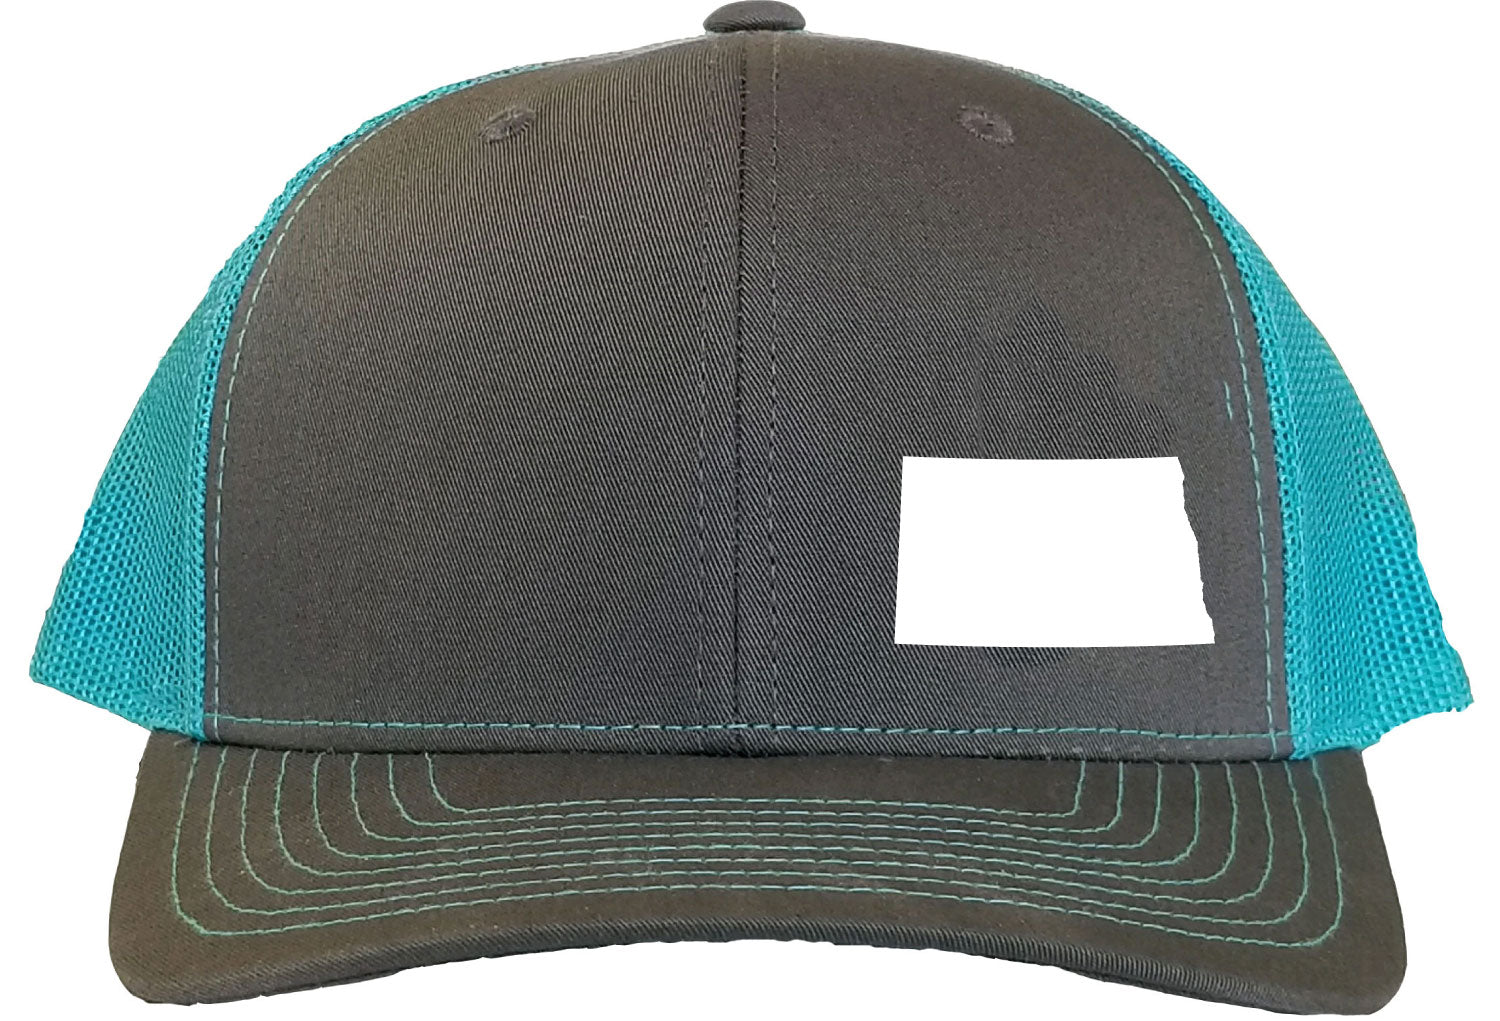 North Dakota Snapback Hat - Grey/Aqua